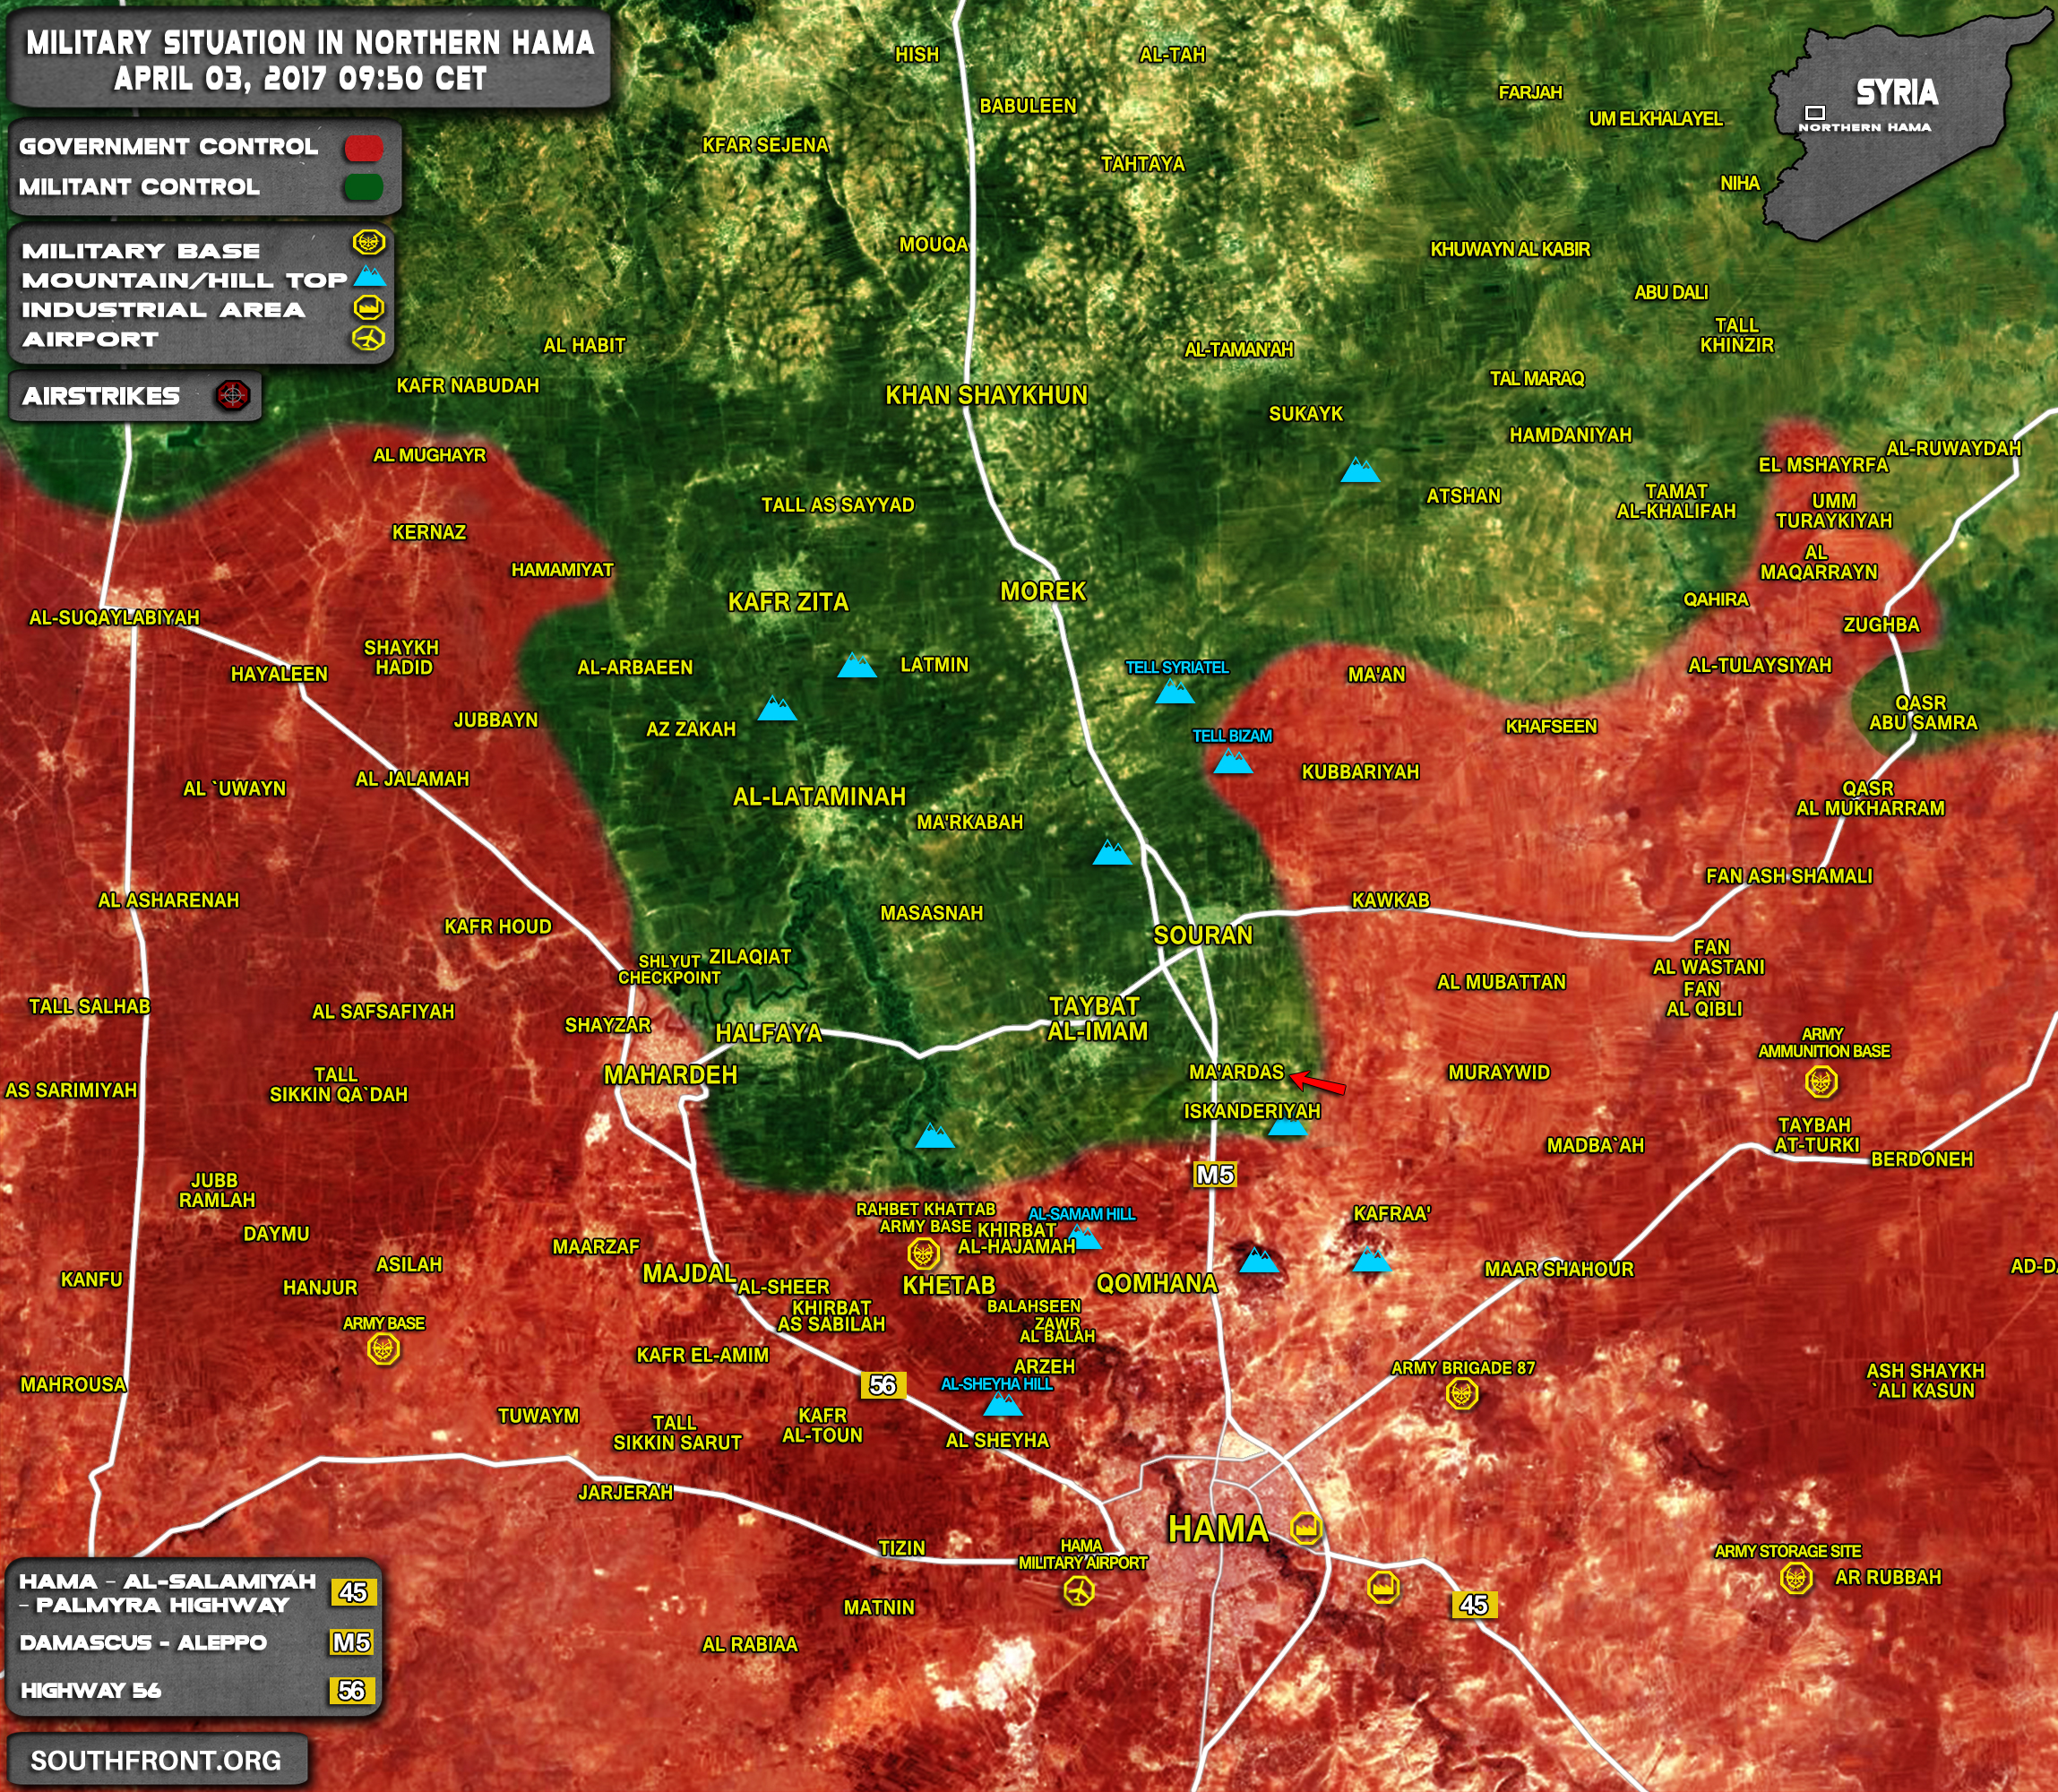 Syrian Army Entered Maardes In Northern Hama (Map)